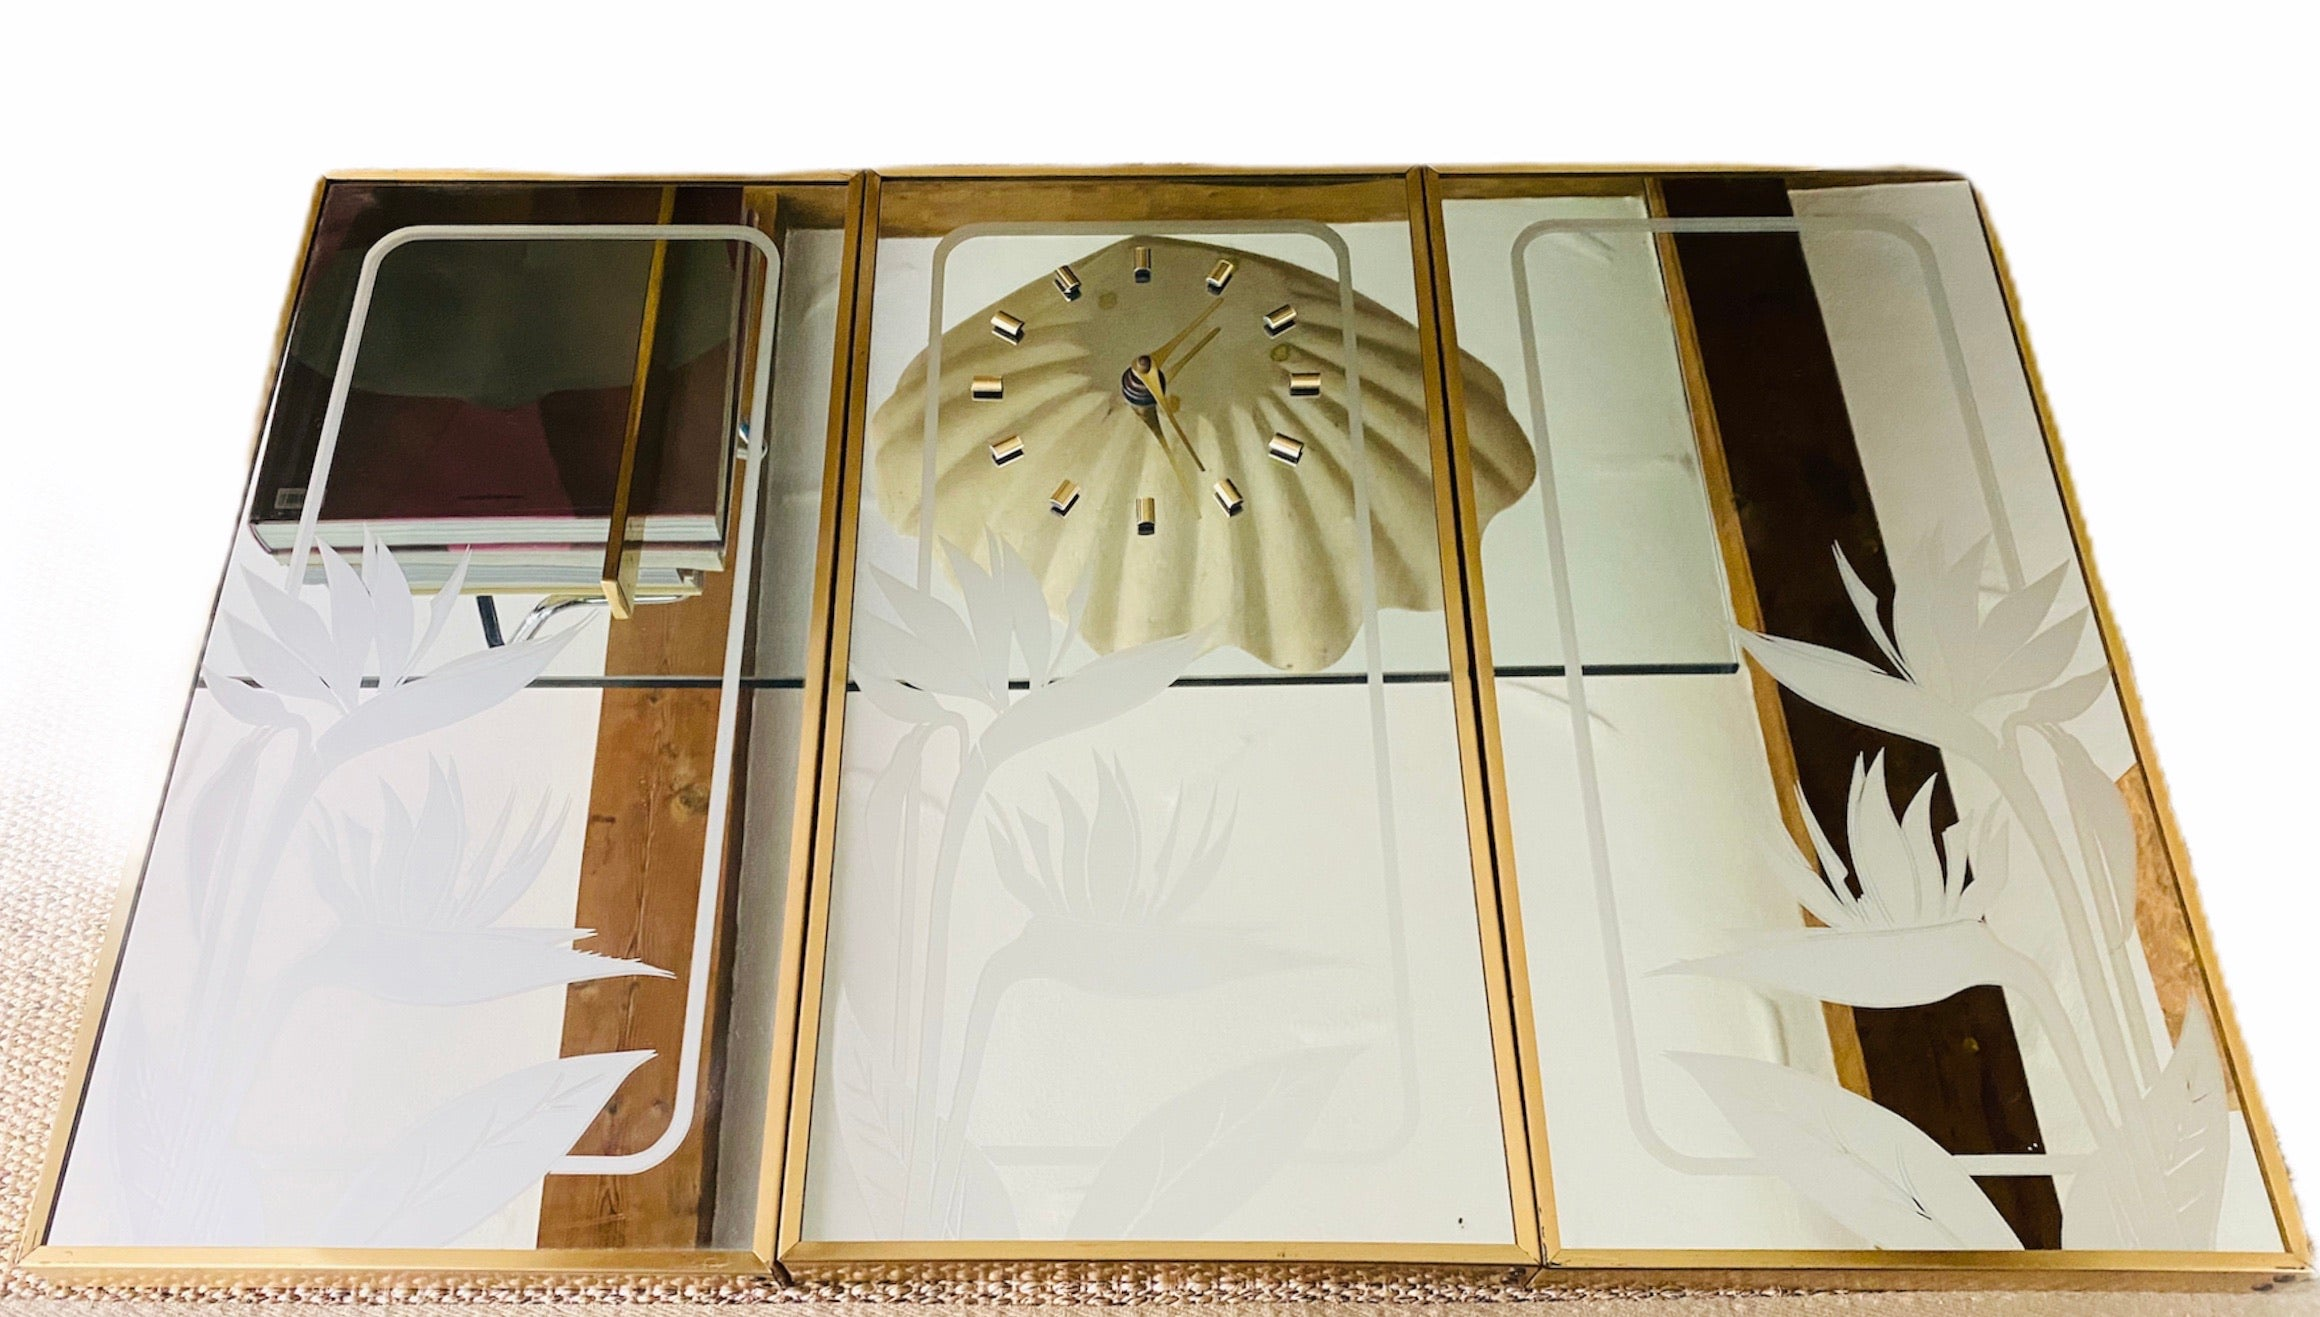 3 Panel Etched Mirrored Clock